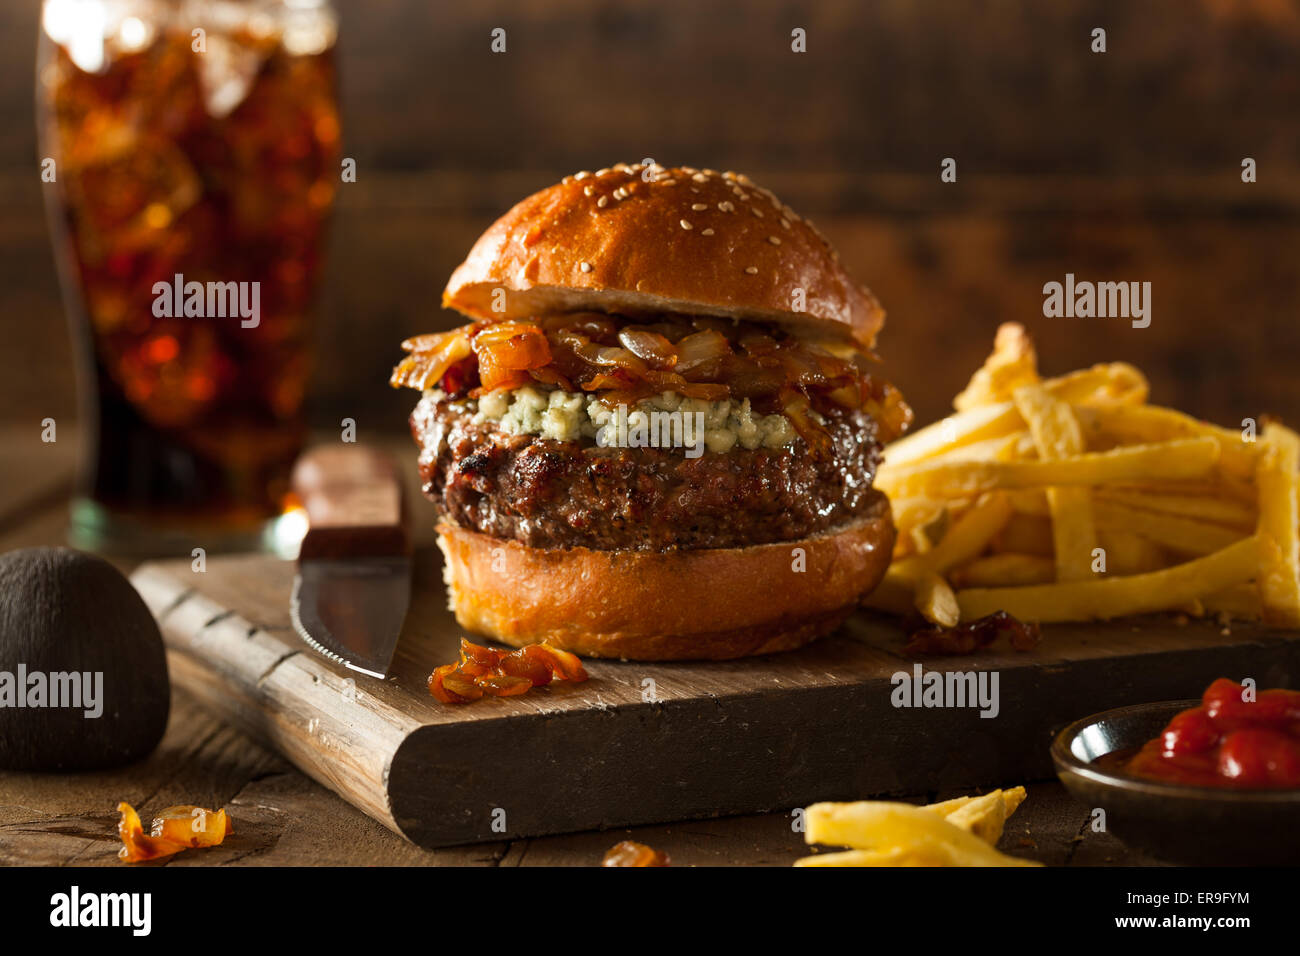 Juicy Blue Cheese Hamburger with Onions and Bacon - Stock Image